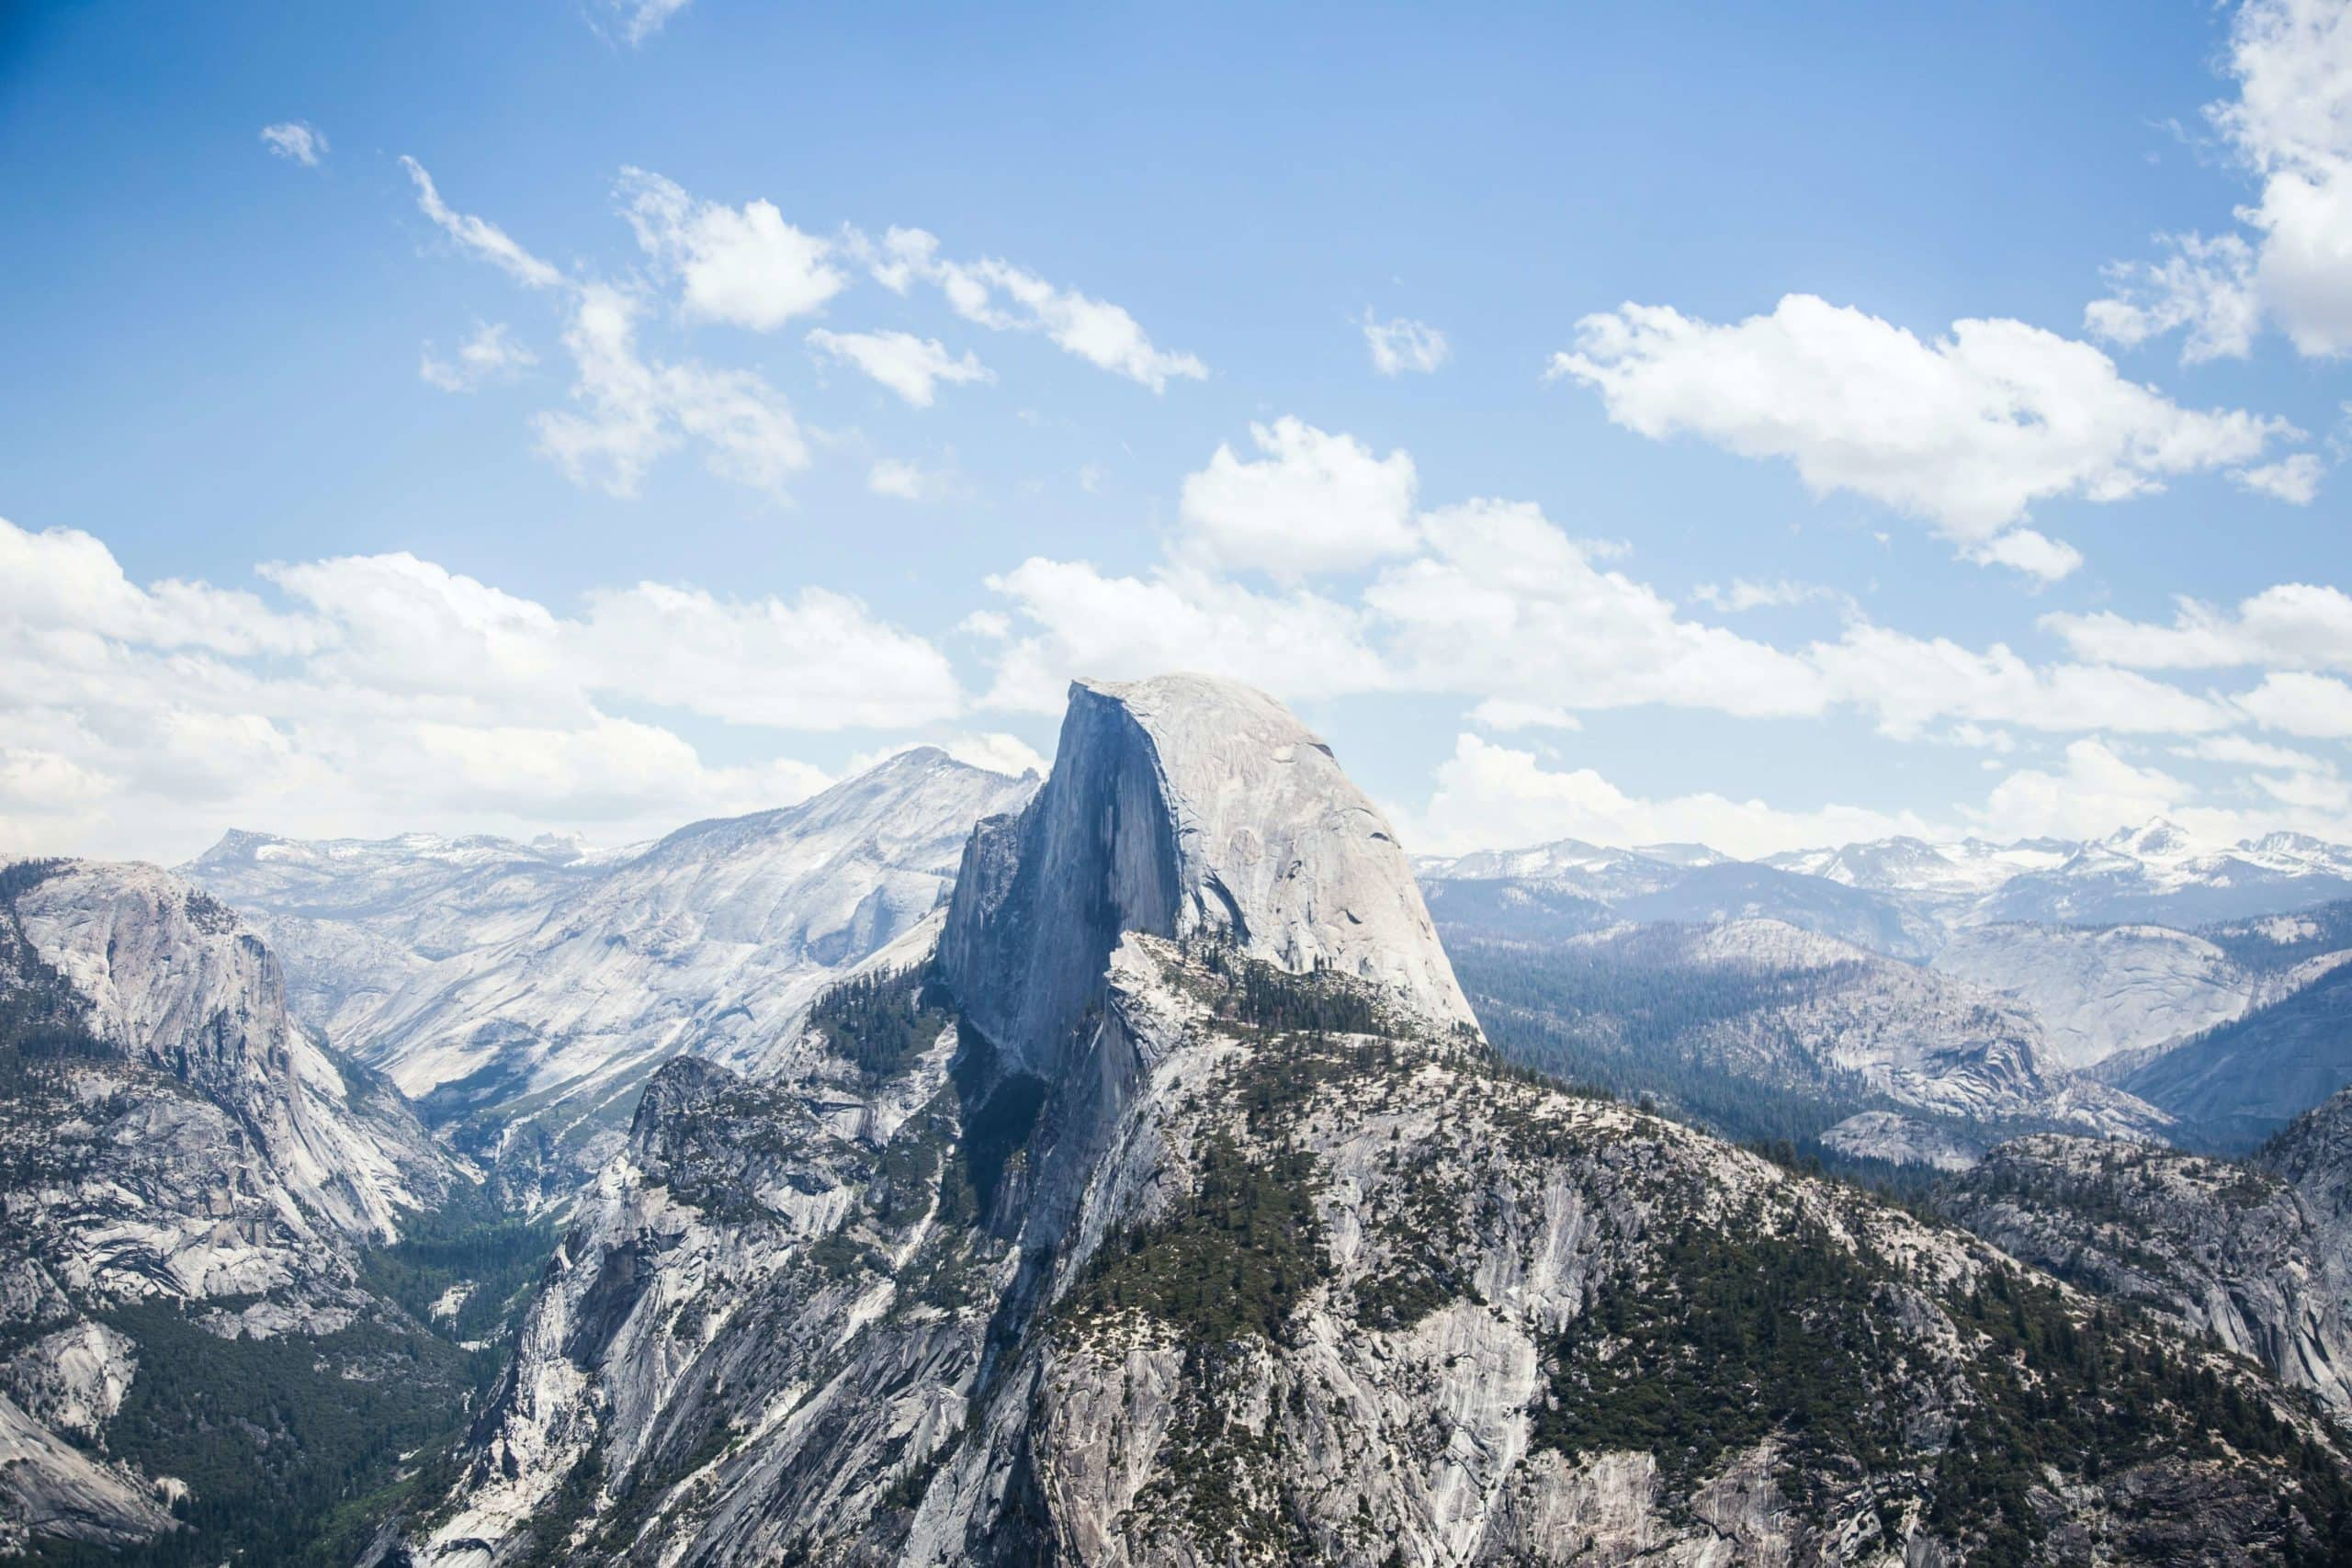 Travel bloggers reveal their most unforgettable travel experiences - Hiking to the Top of Half Dome in Yosemite National Park